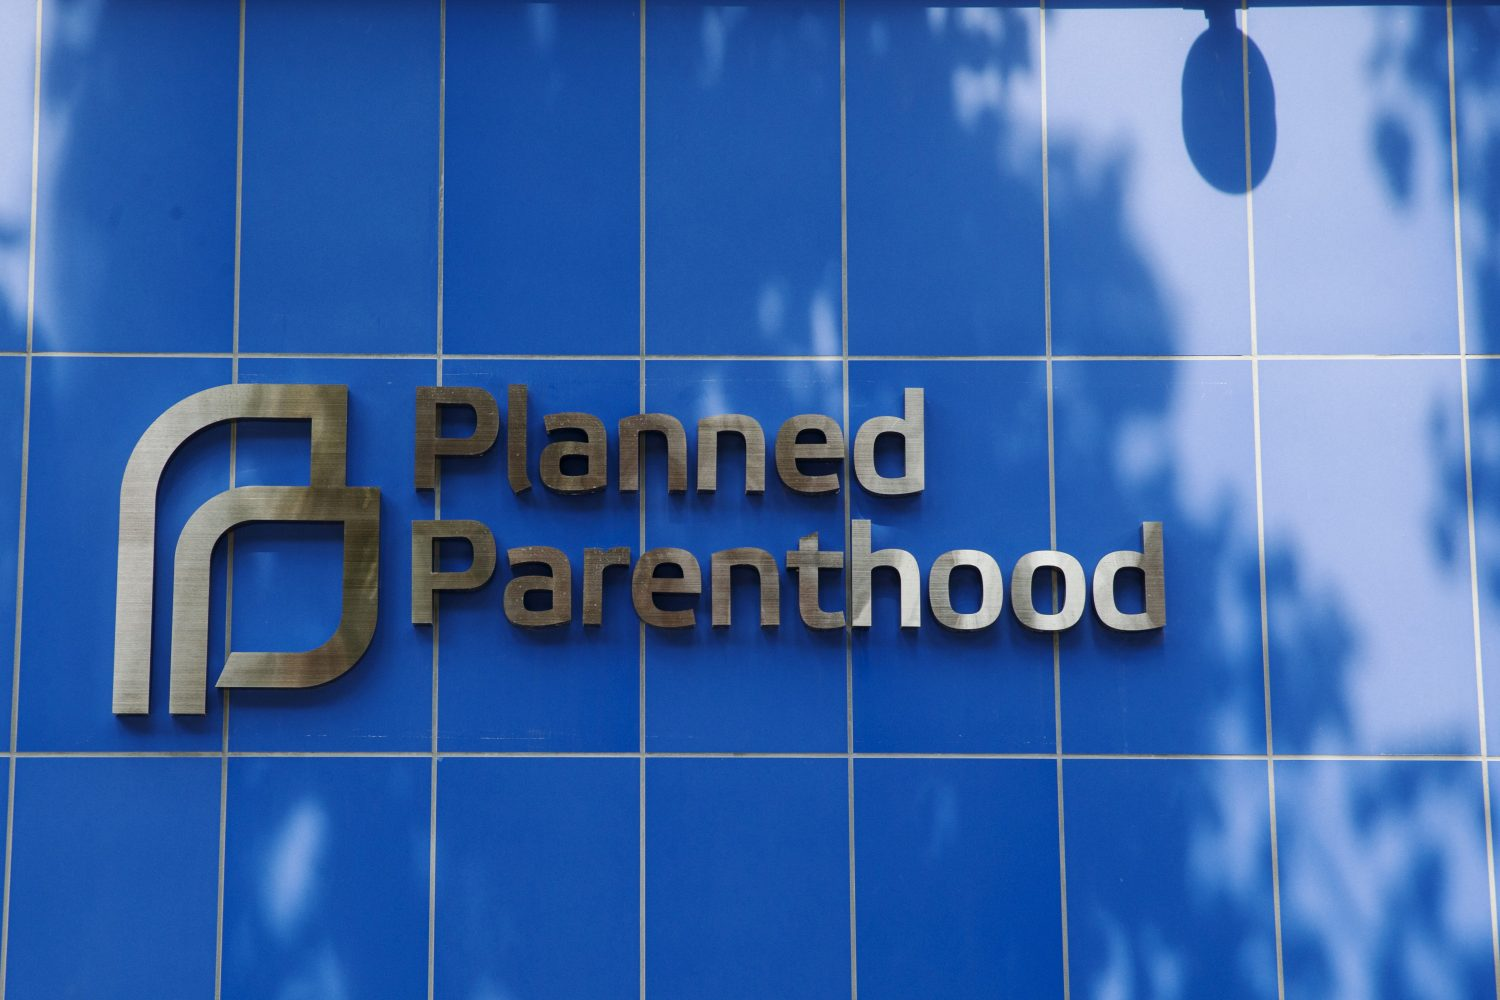 FILE PHOTO: A sign is pictured at the entrance to a Planned Parenthood building in New York August 31, 2015. REUTERS/Lucas Jackson/File Photo